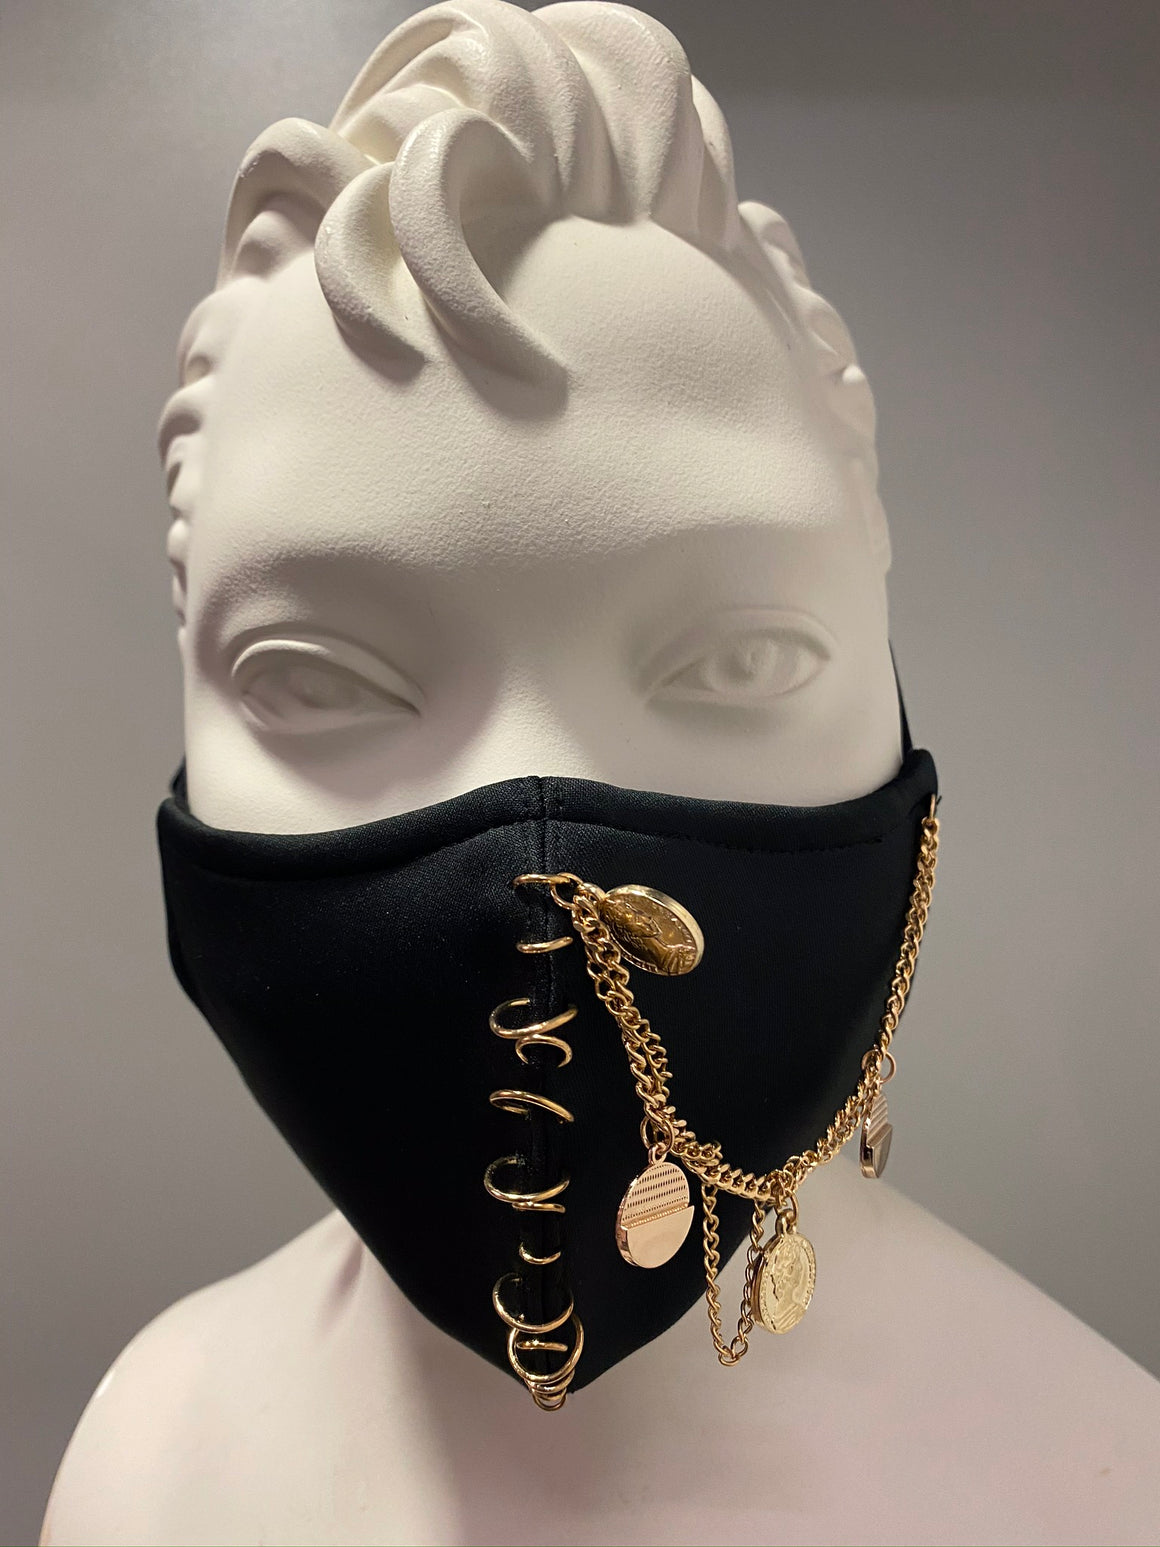 The Chain Face Mask